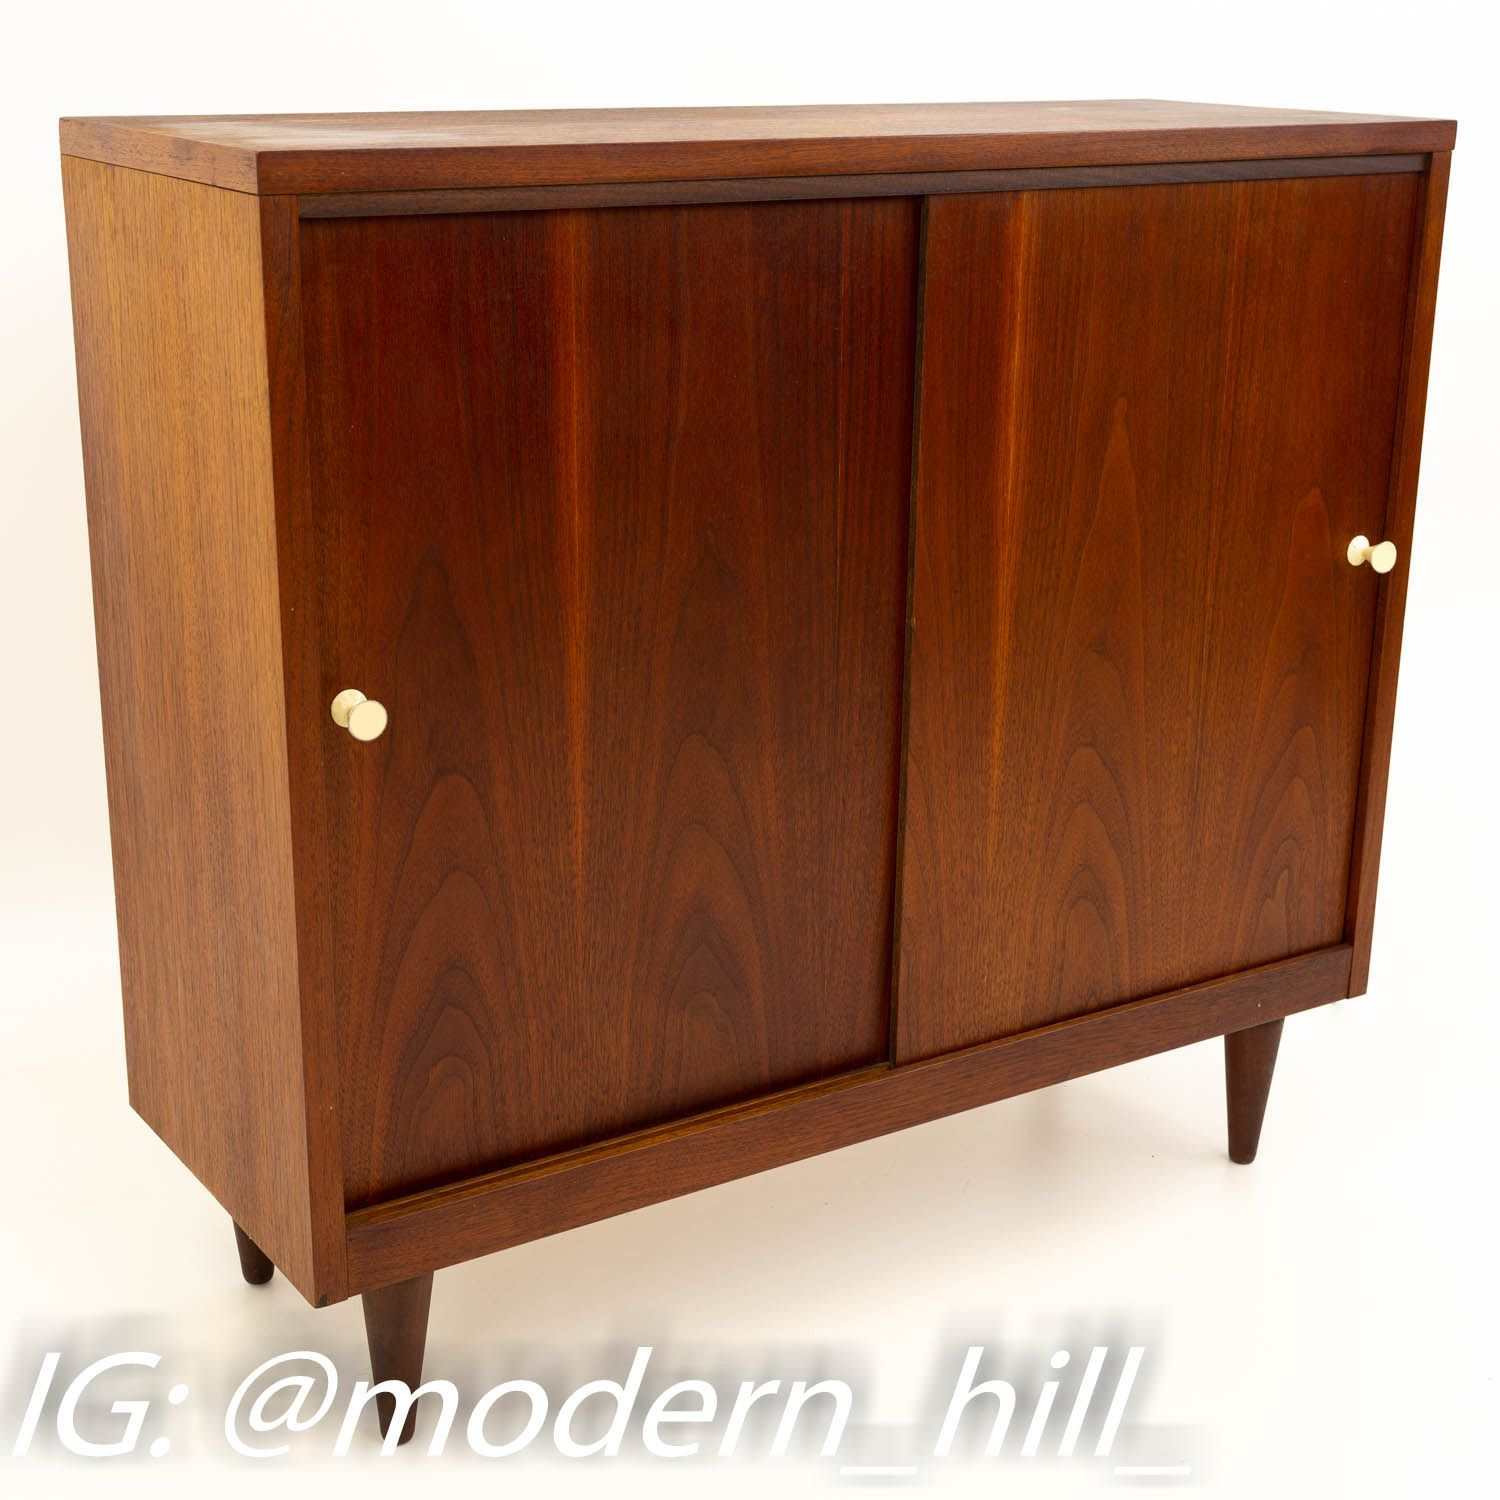 Crescent Furniture Mid Century Walnut Console Media Cabinet In 2019 Mid Century Furniture Furniture Media Cabinet